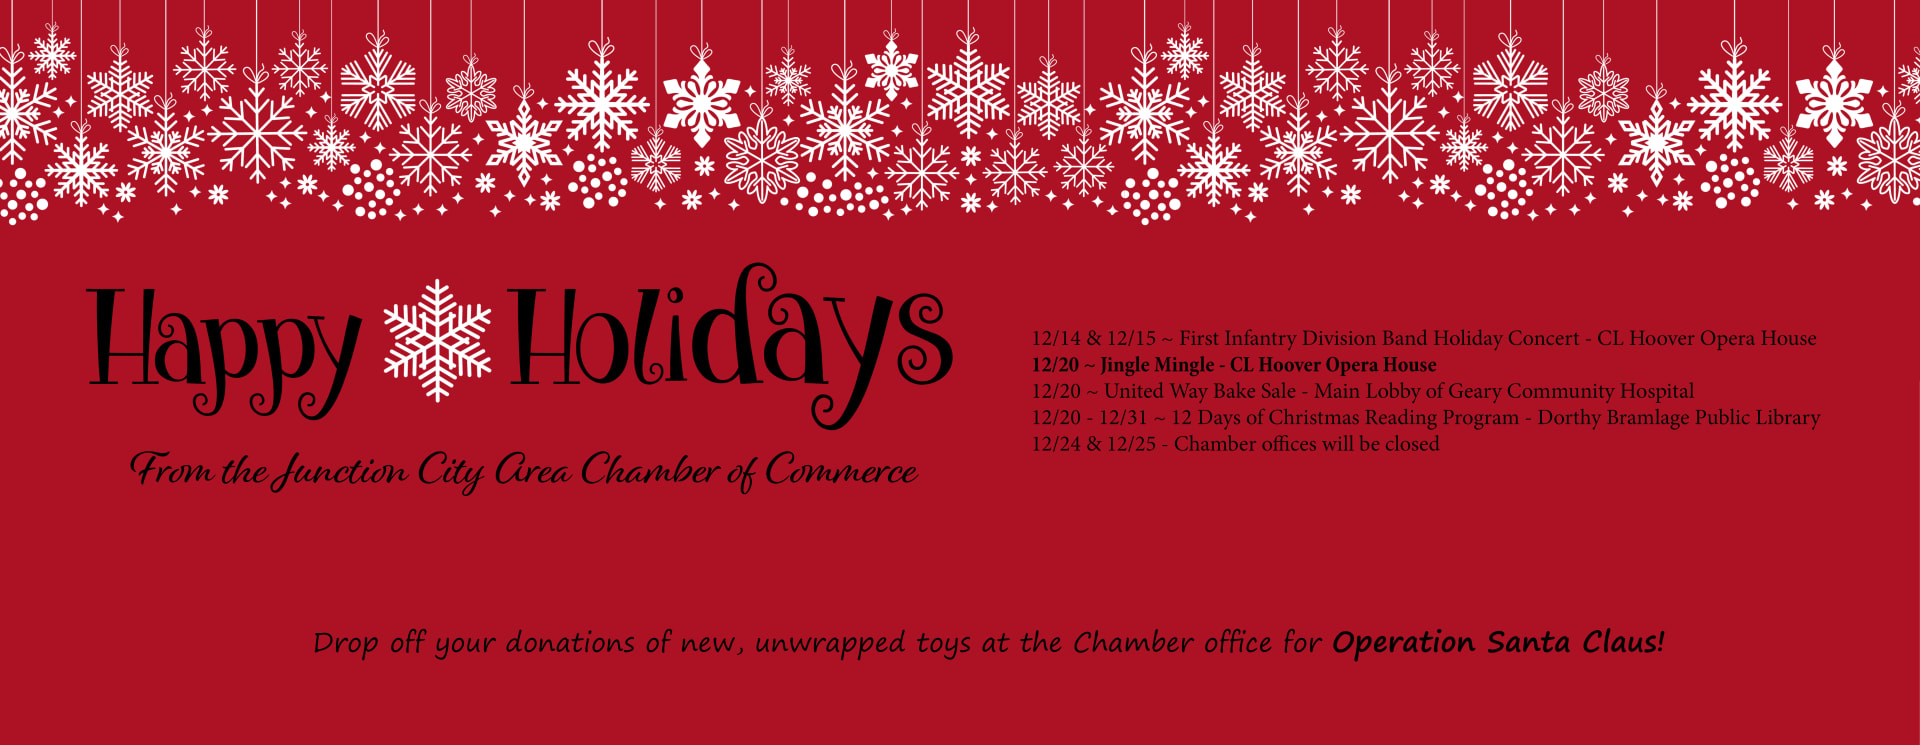 Holiday-Web-Banner-updated2-w1920.jpg